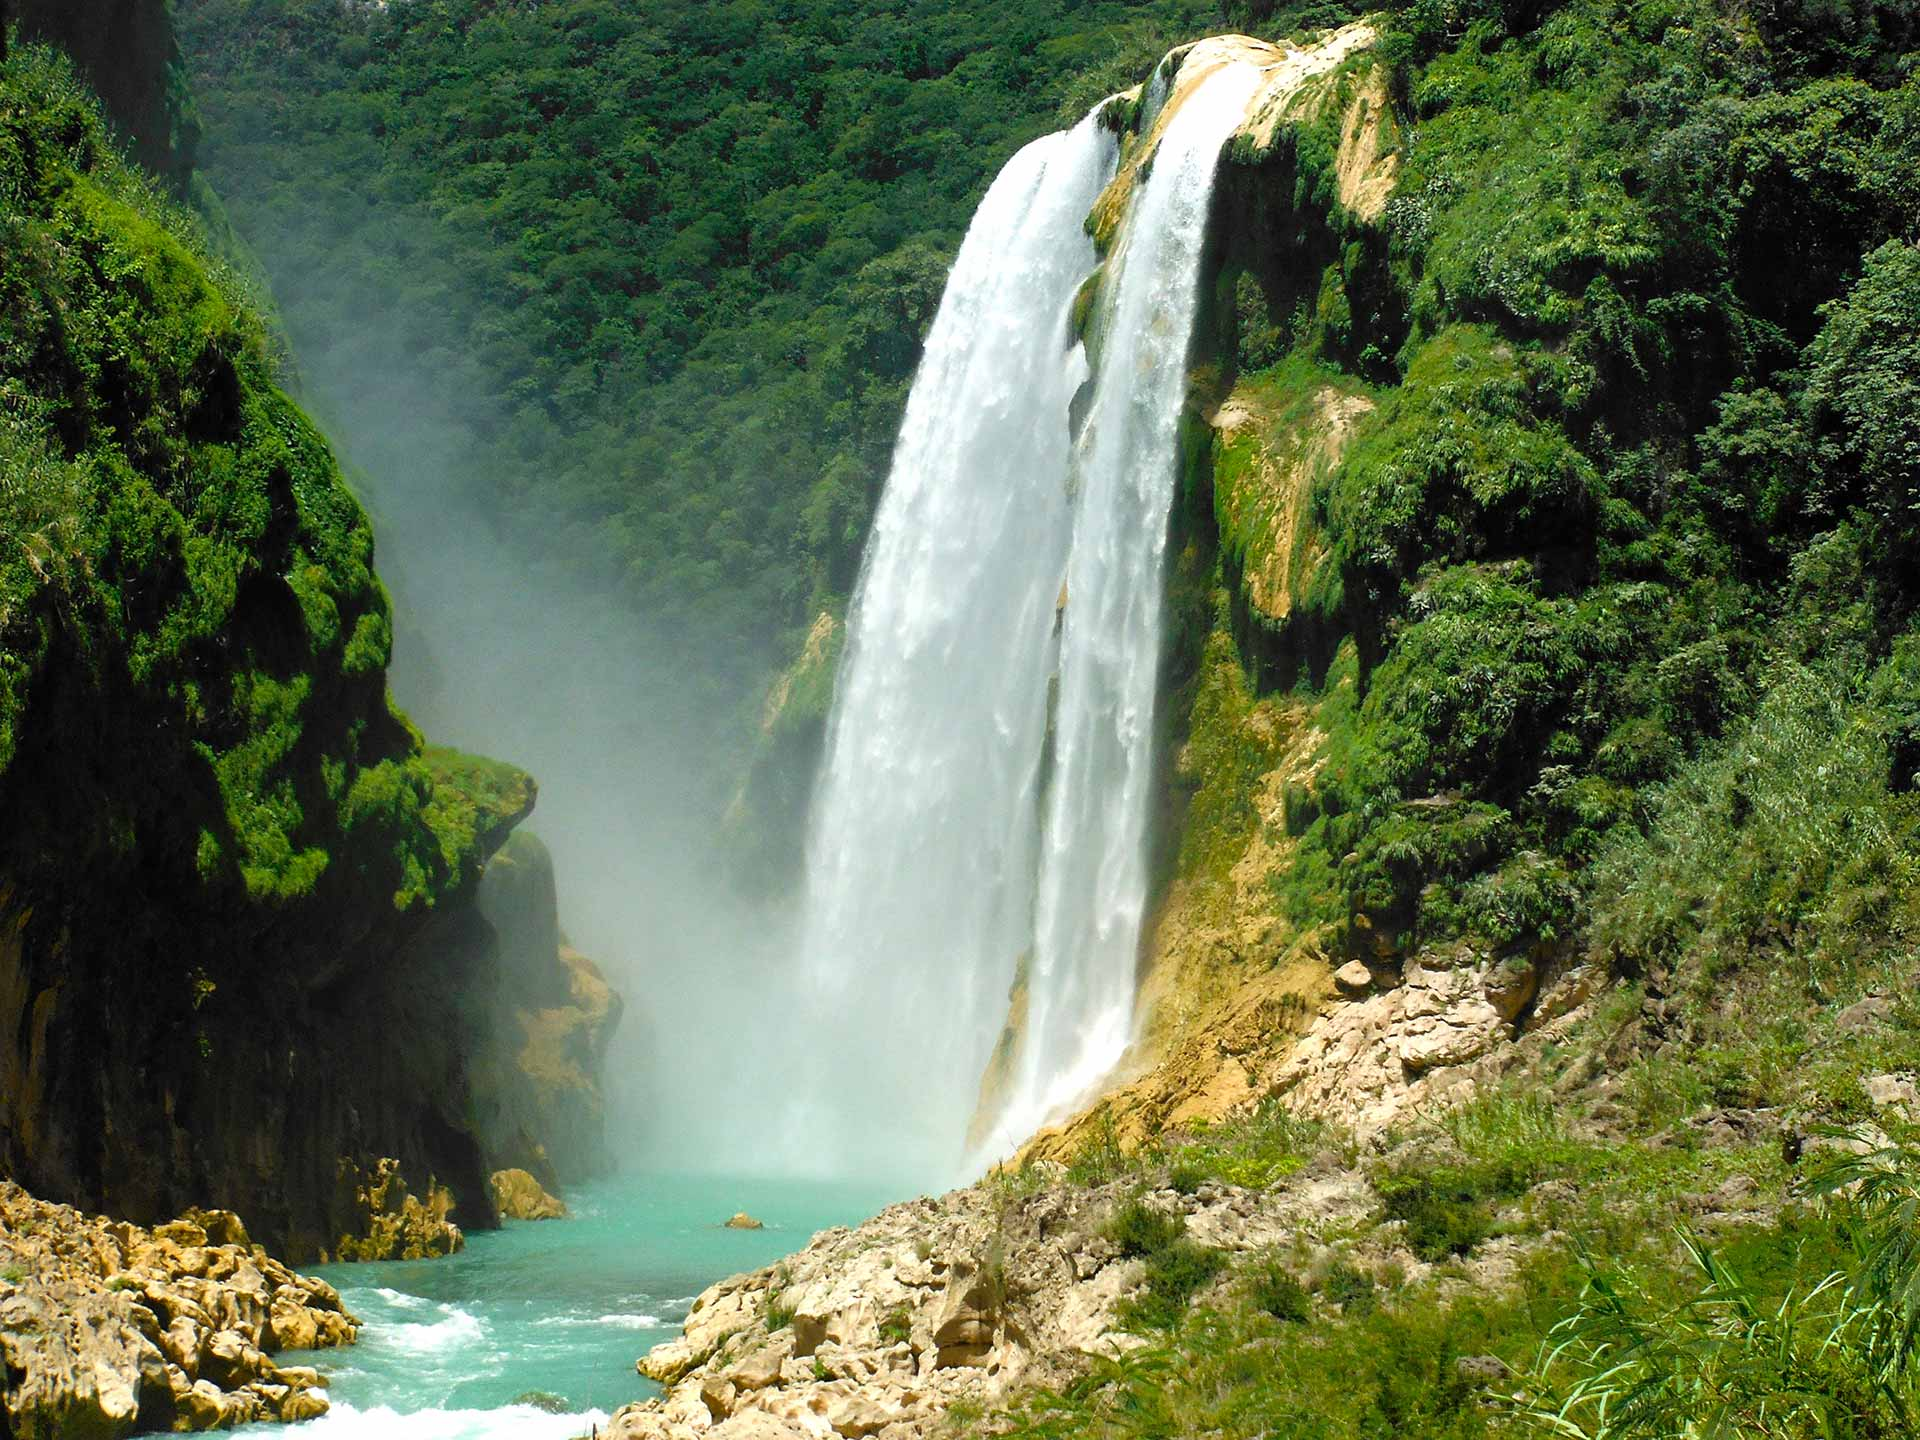 Tamul waterfall. Image courtesy of Huaxteca.com